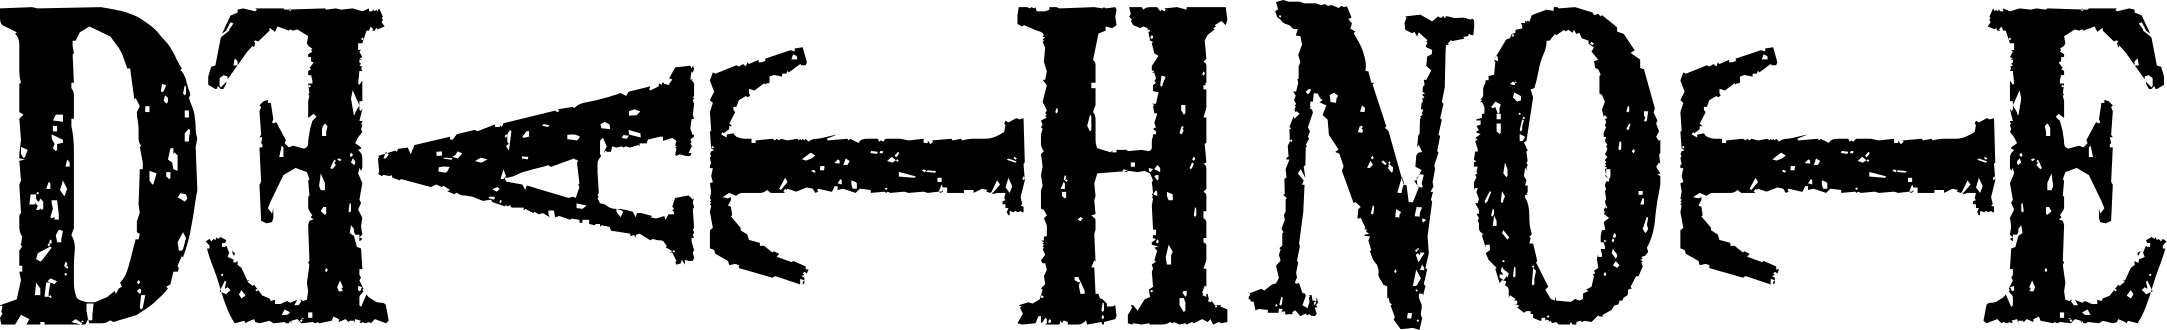 Death note logo png. File svg wikimedia commons